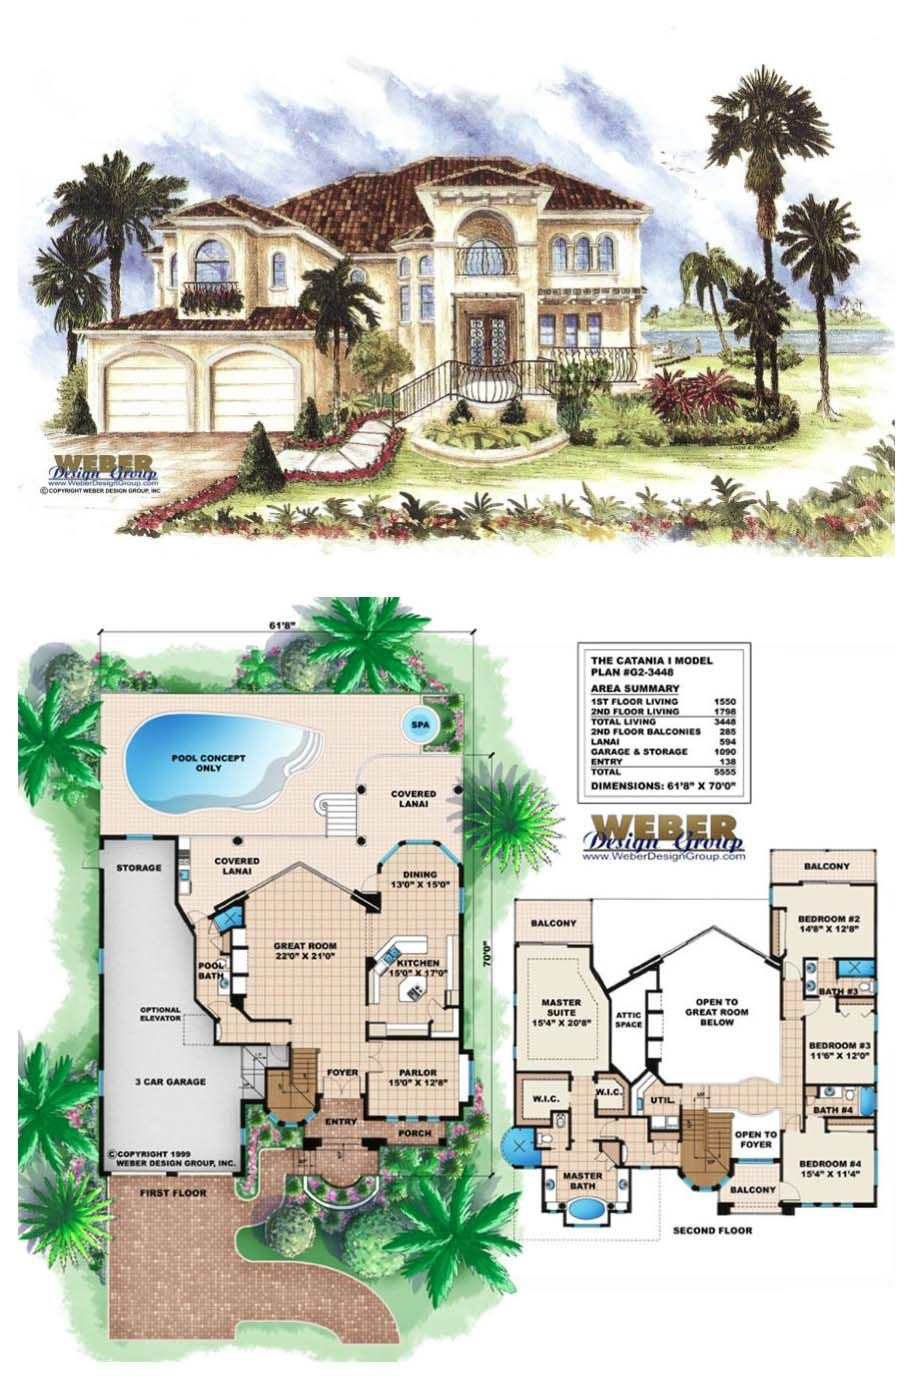 High End House Plans Lovely Catania I House Plan